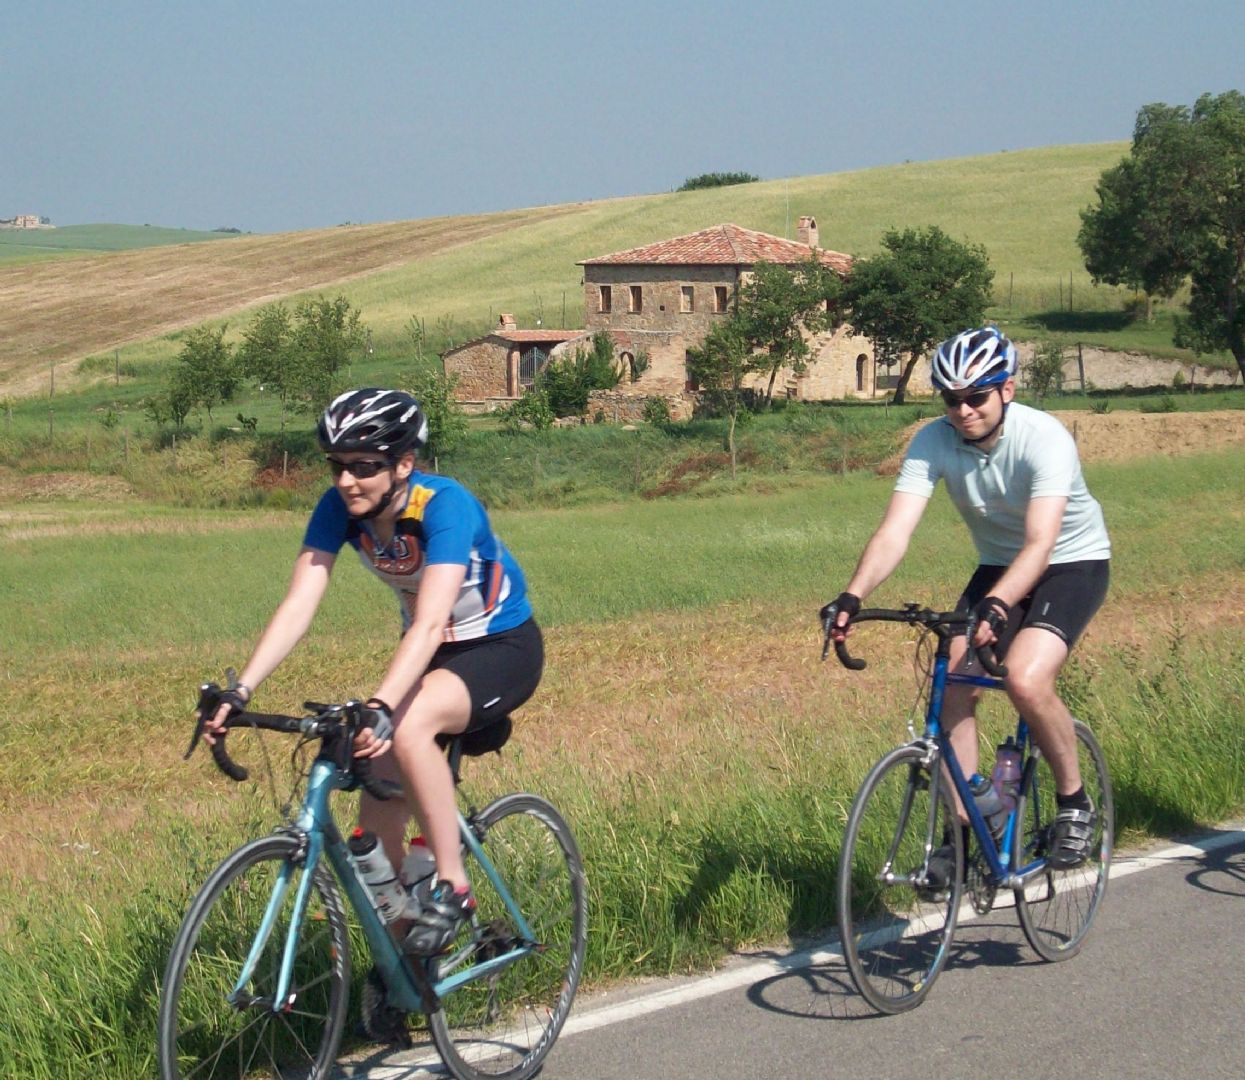 103_2447.JPG - Italy - Passes of Piemonte - Italia Road Cycling